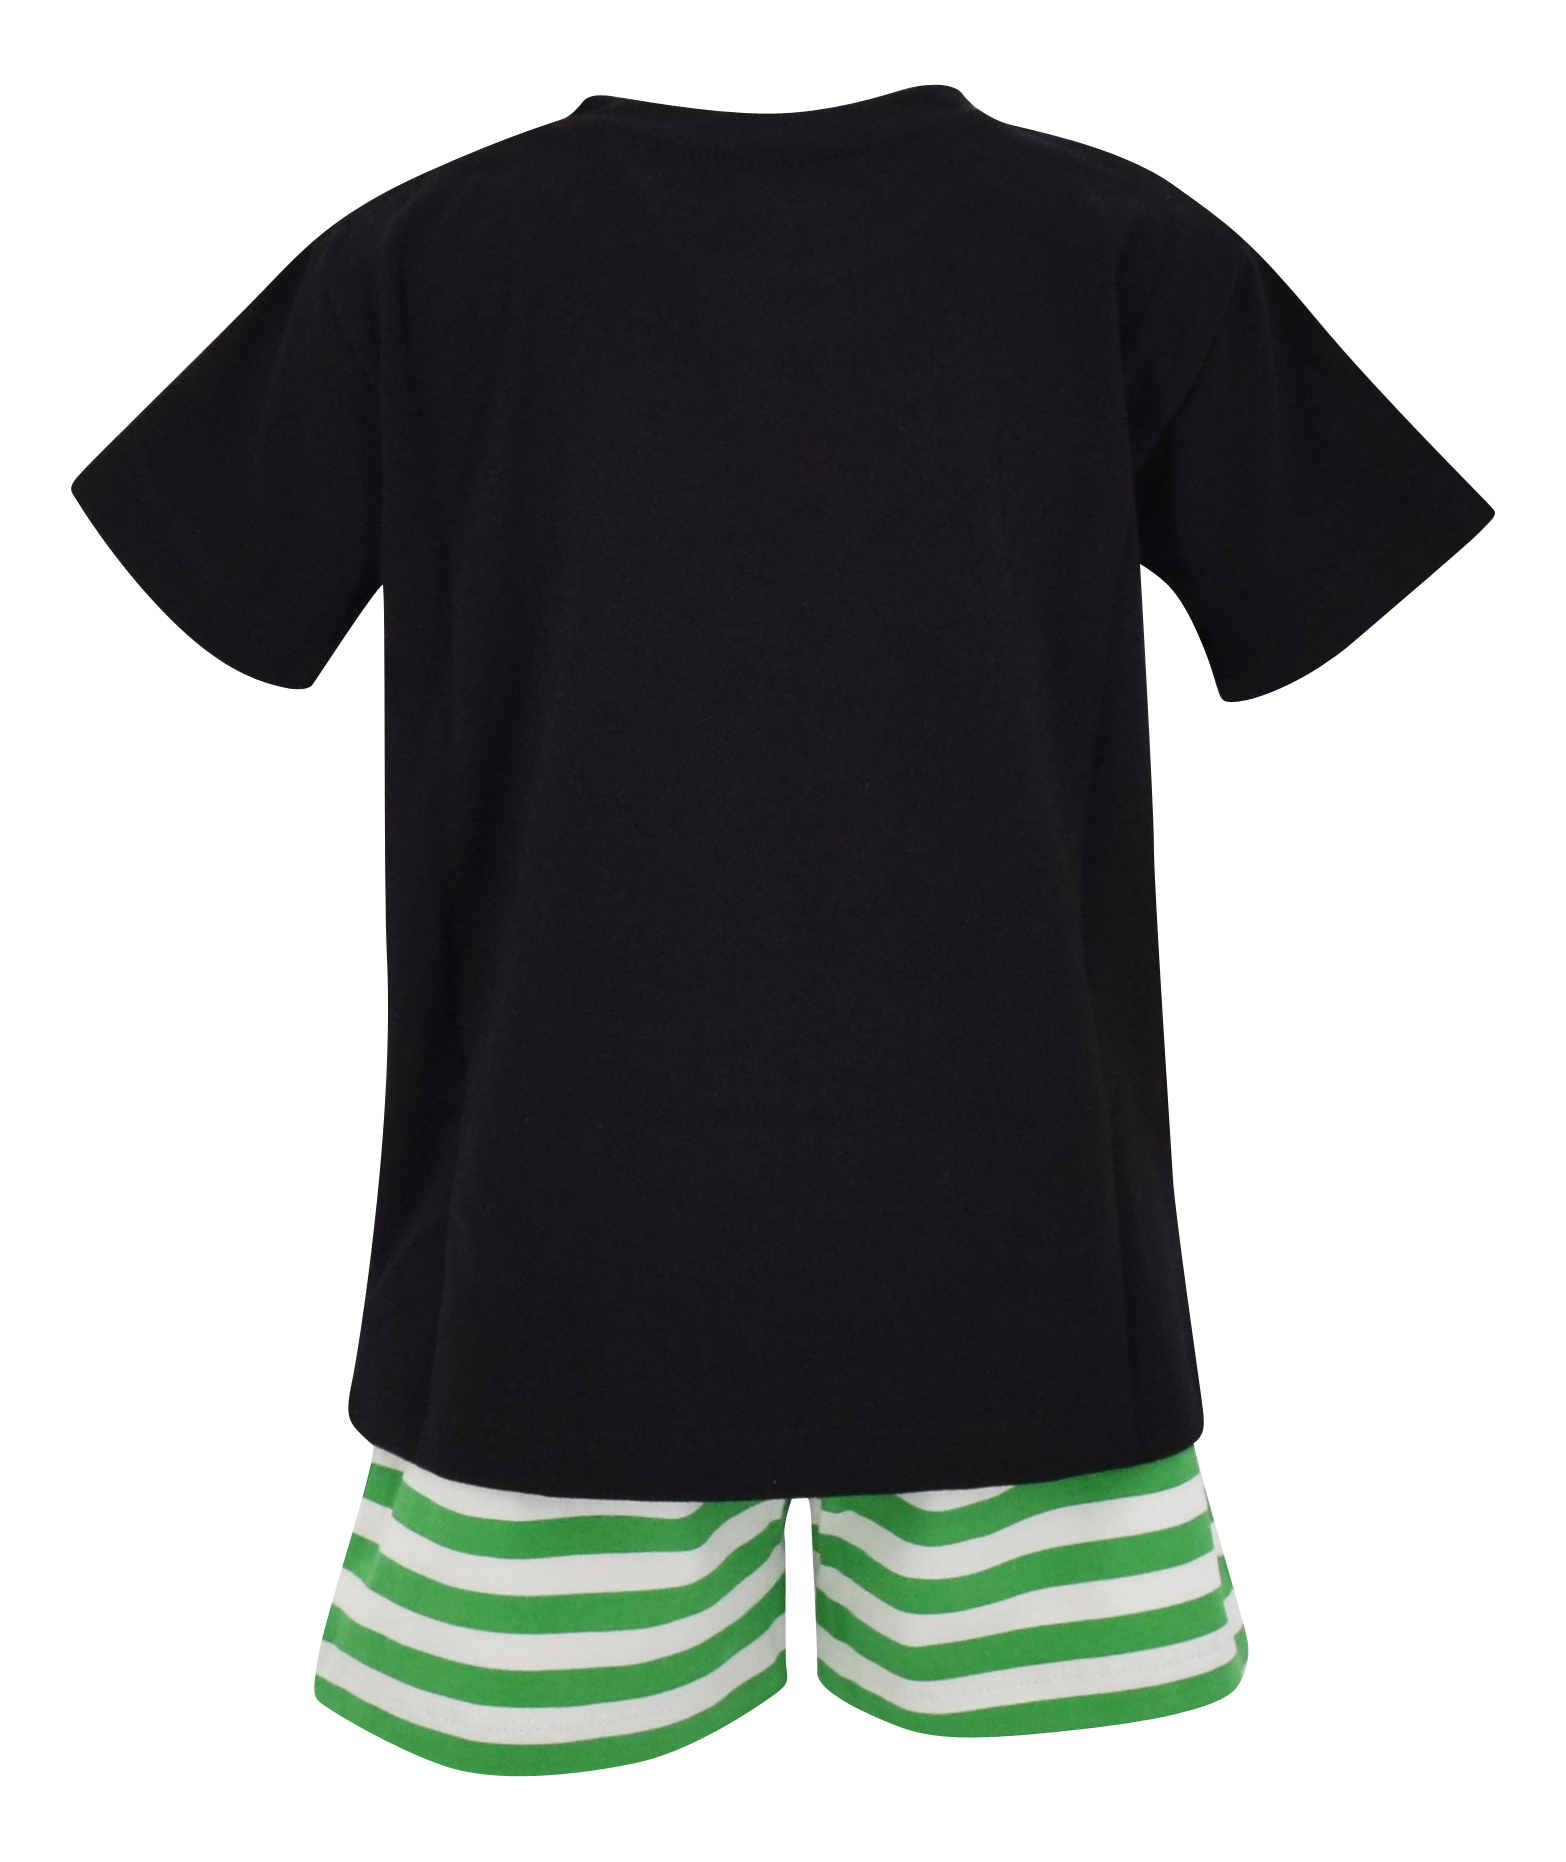 Boys-2-Piece-ST-Patricks-Day-Clover-Outfit-2t-3t-4t-5-6-7-8-Toddler-Kids-Clothes thumbnail 45